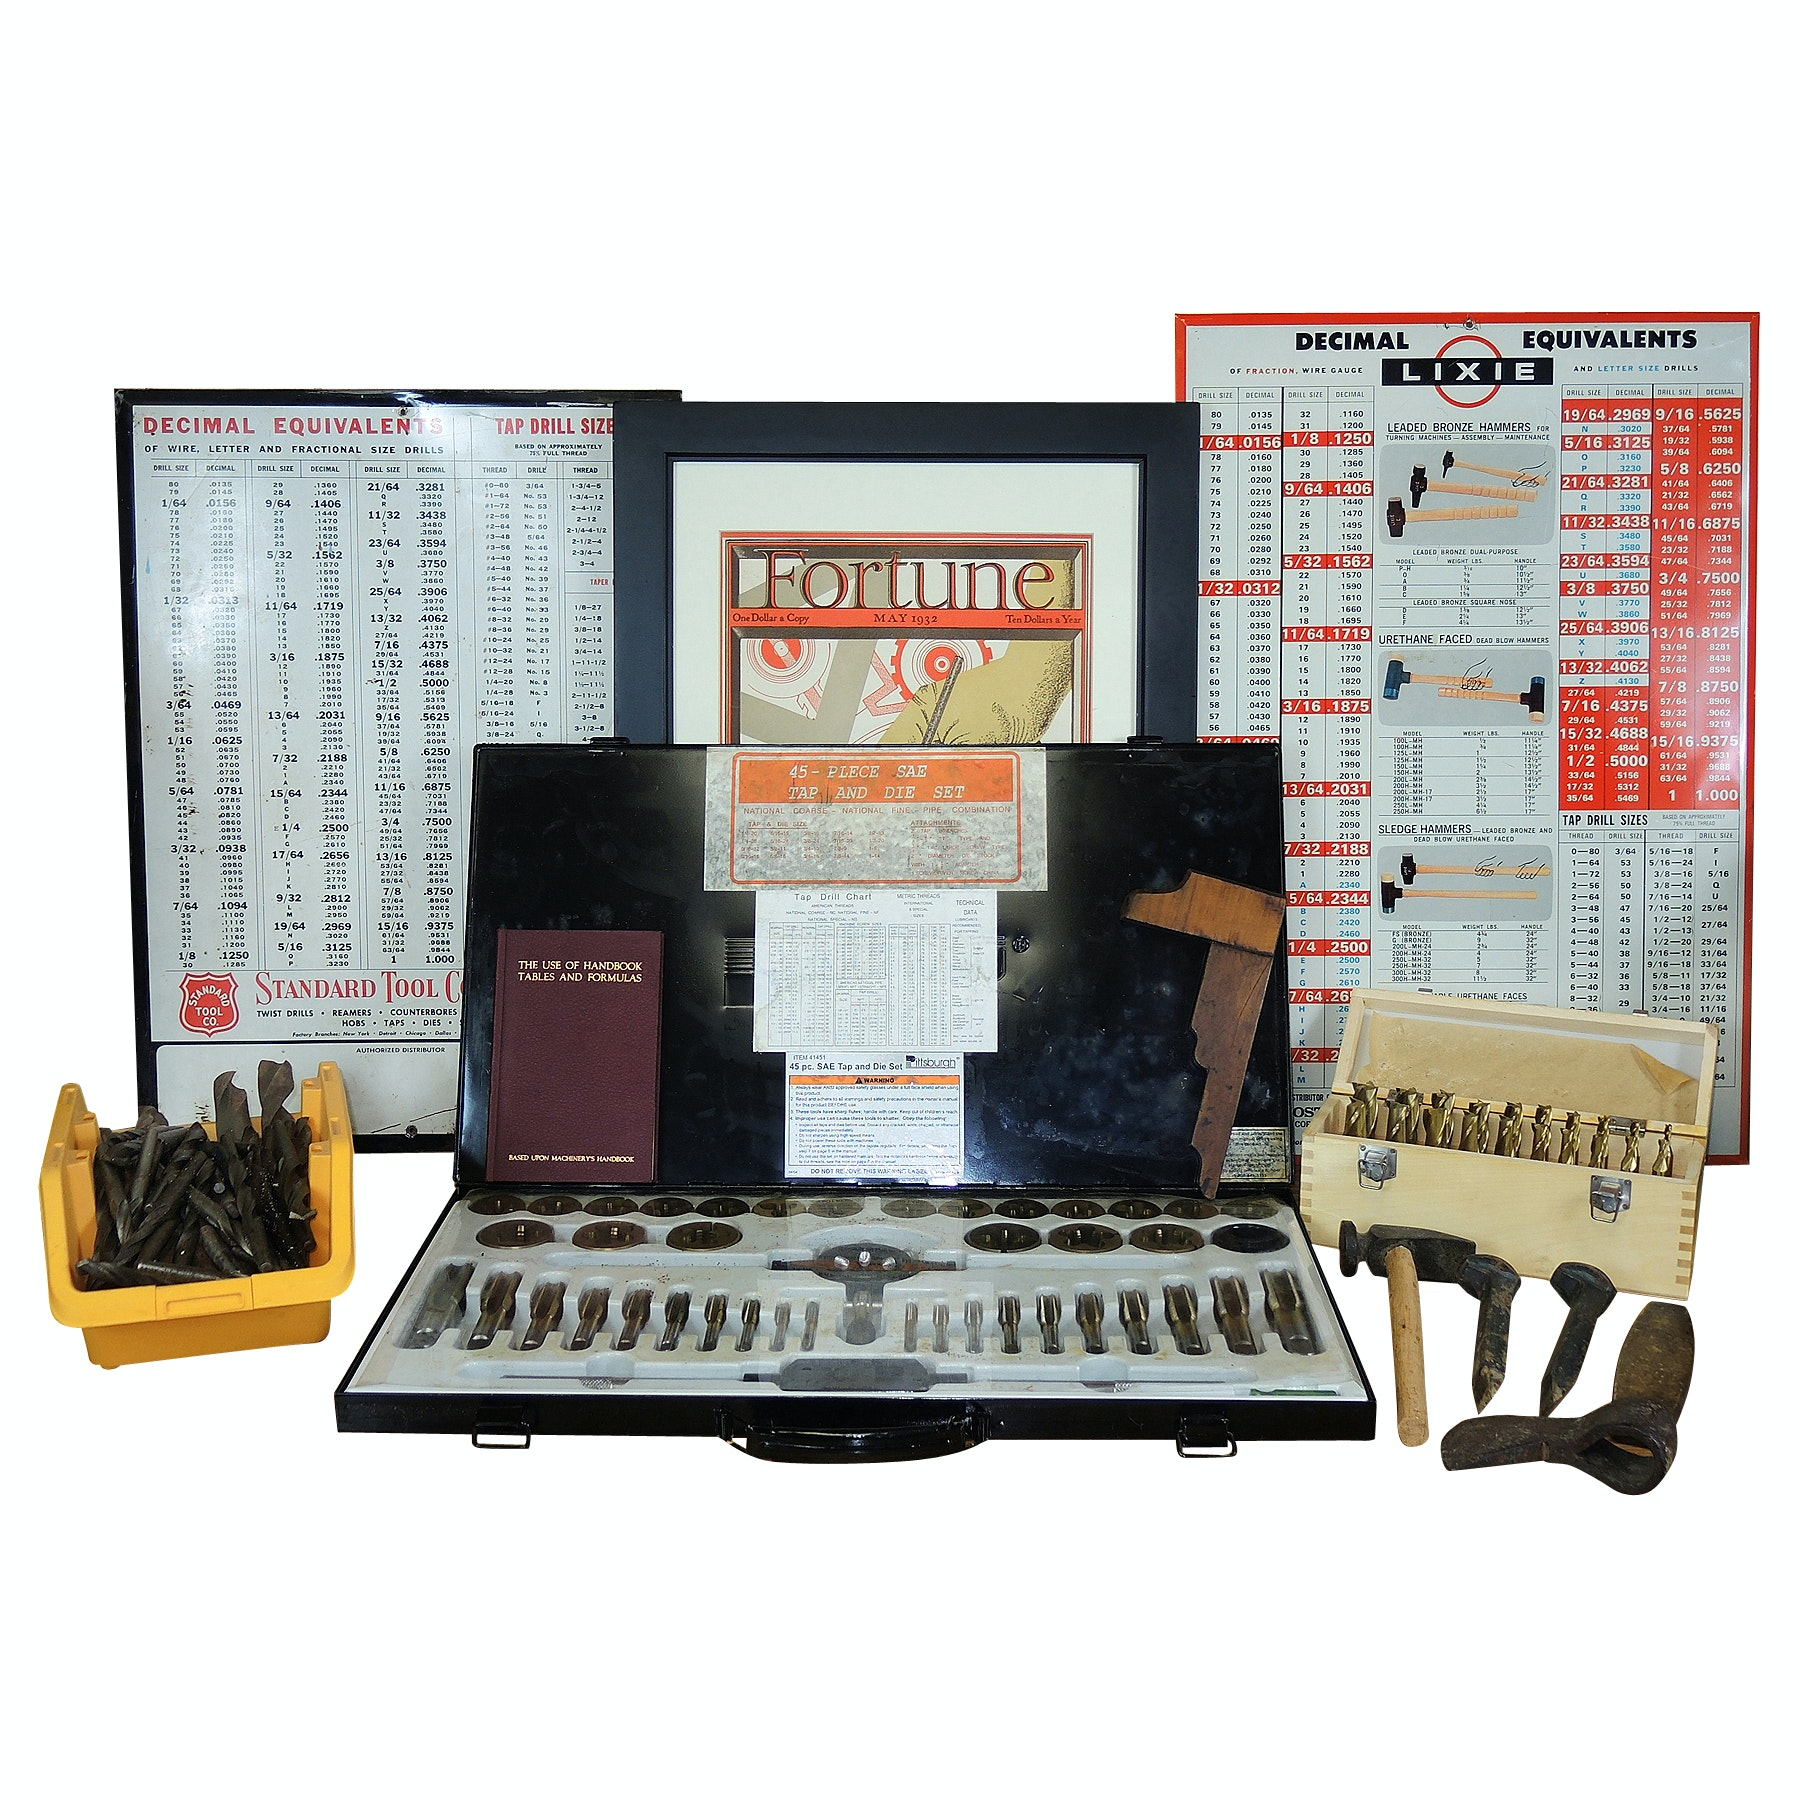 Vintage Hand Tools, Decimal Equivalent Shop Signs, and Tap and Die Set